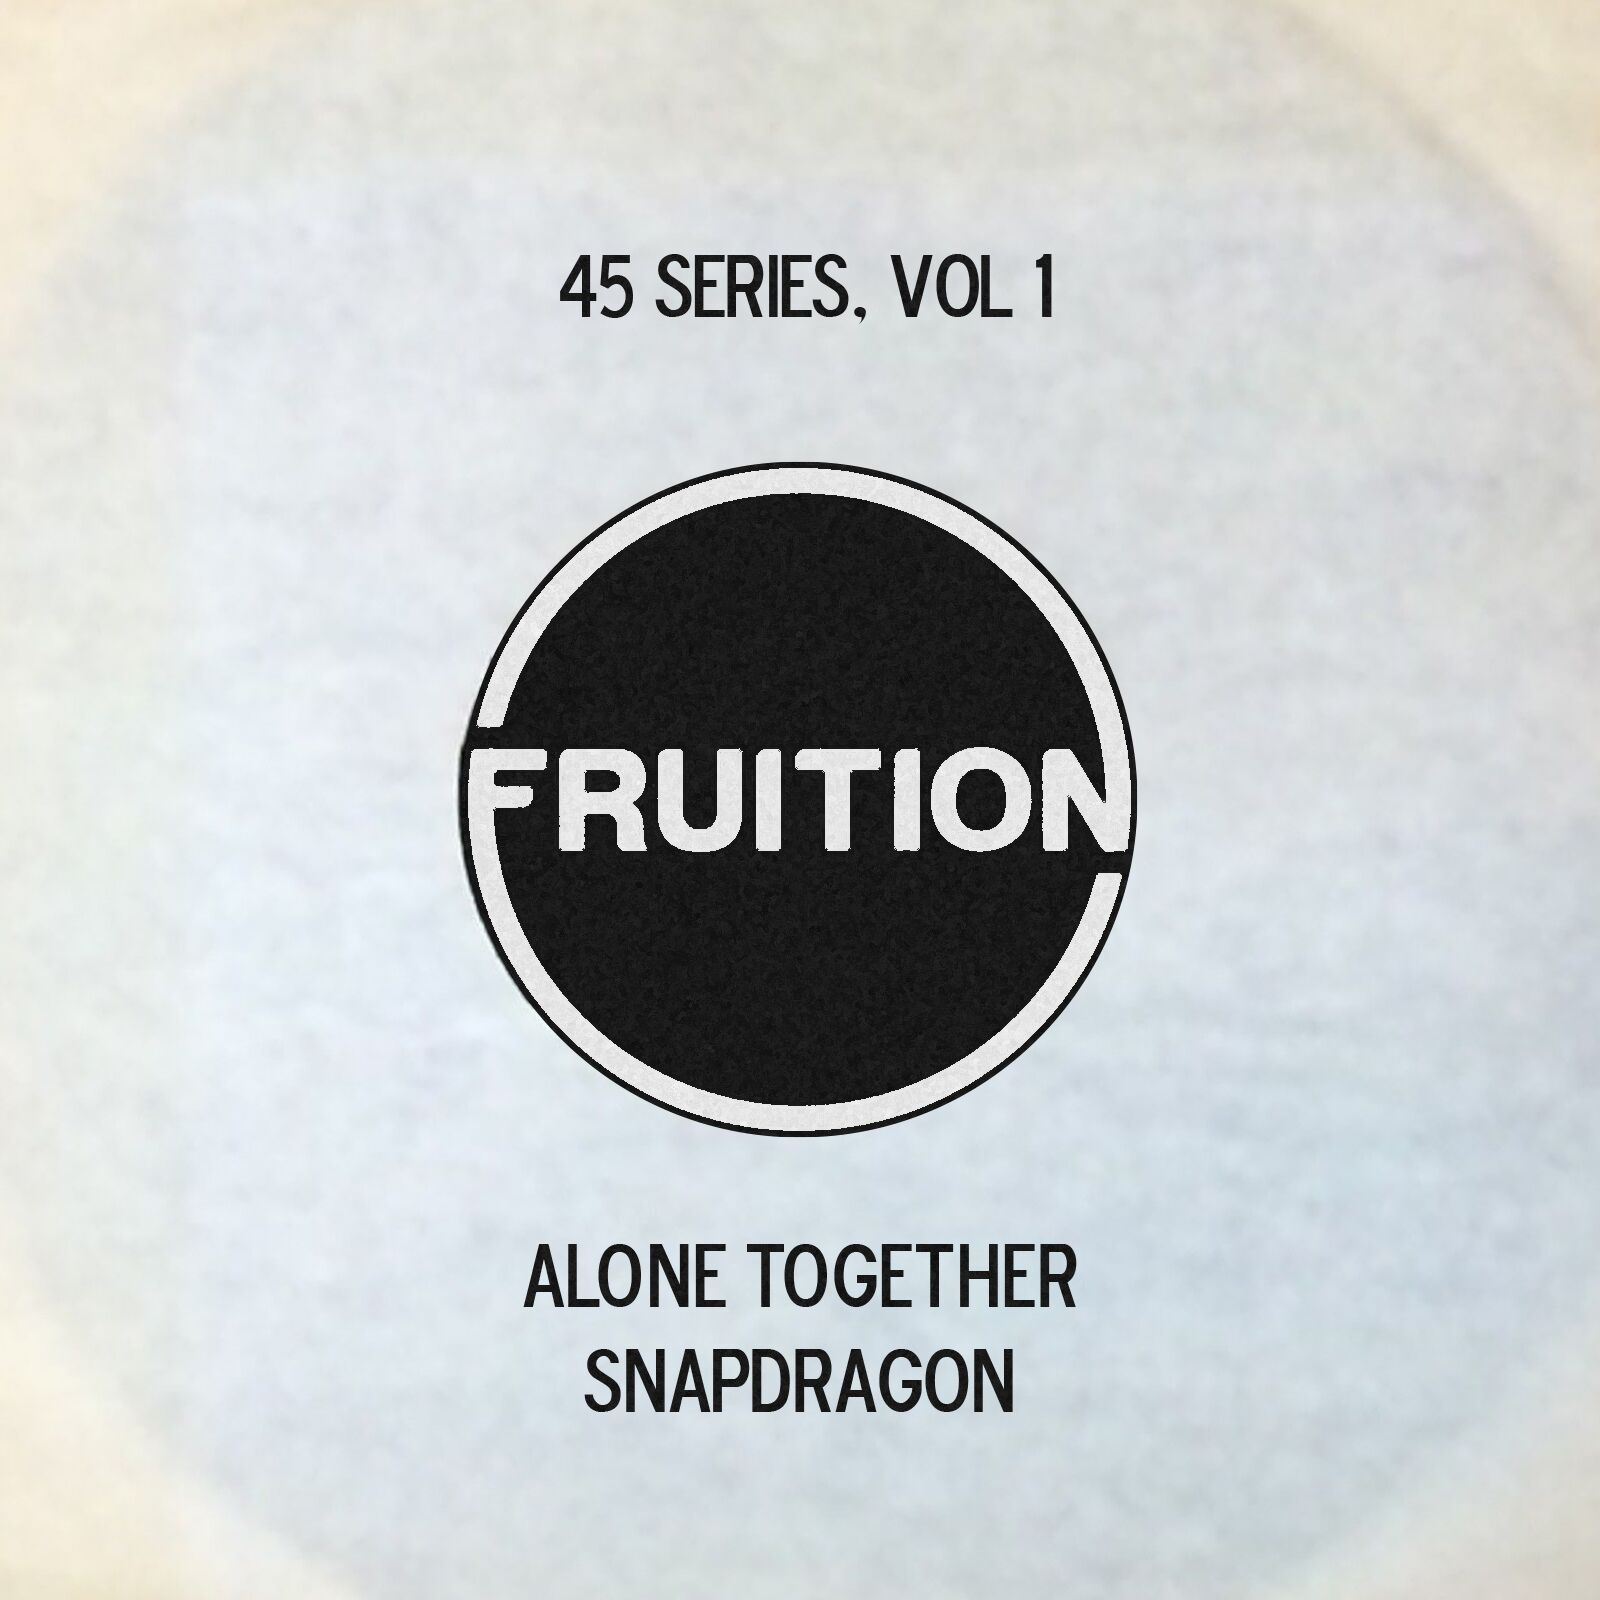 Fruition announces new 45 Series, Vol. 1 digital and vinyl series, and new tour dates